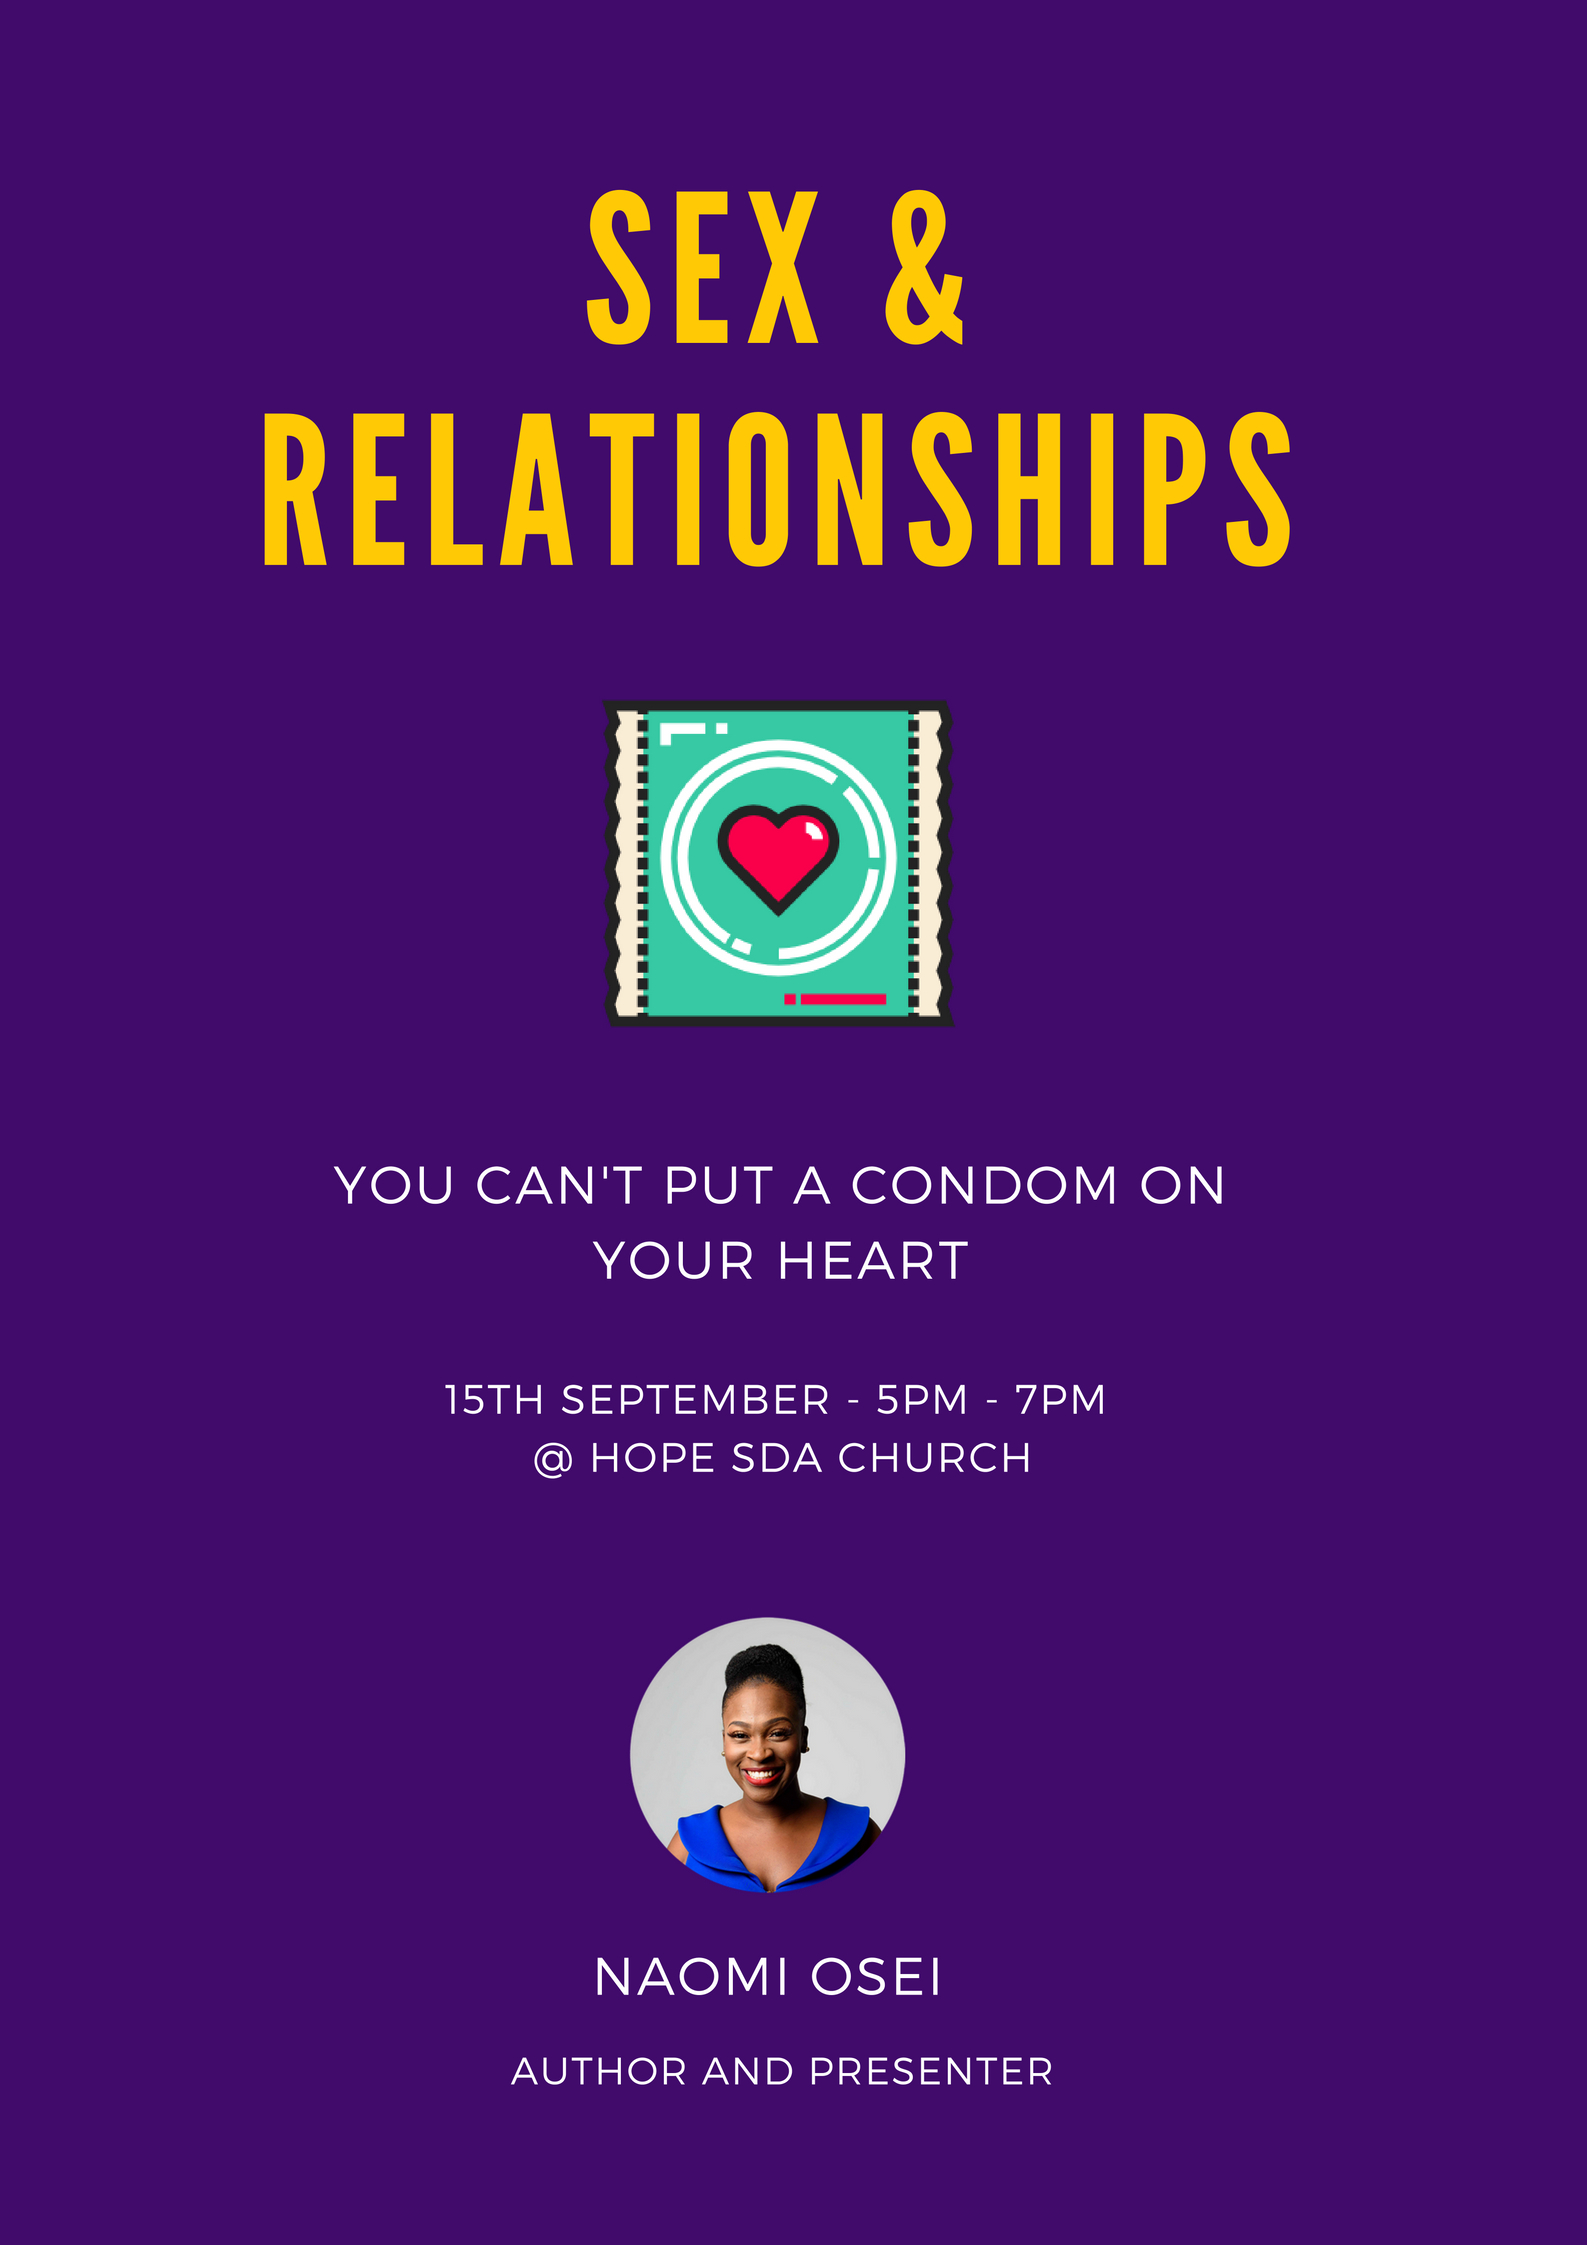 Sex & Relationships - Hope Church Event